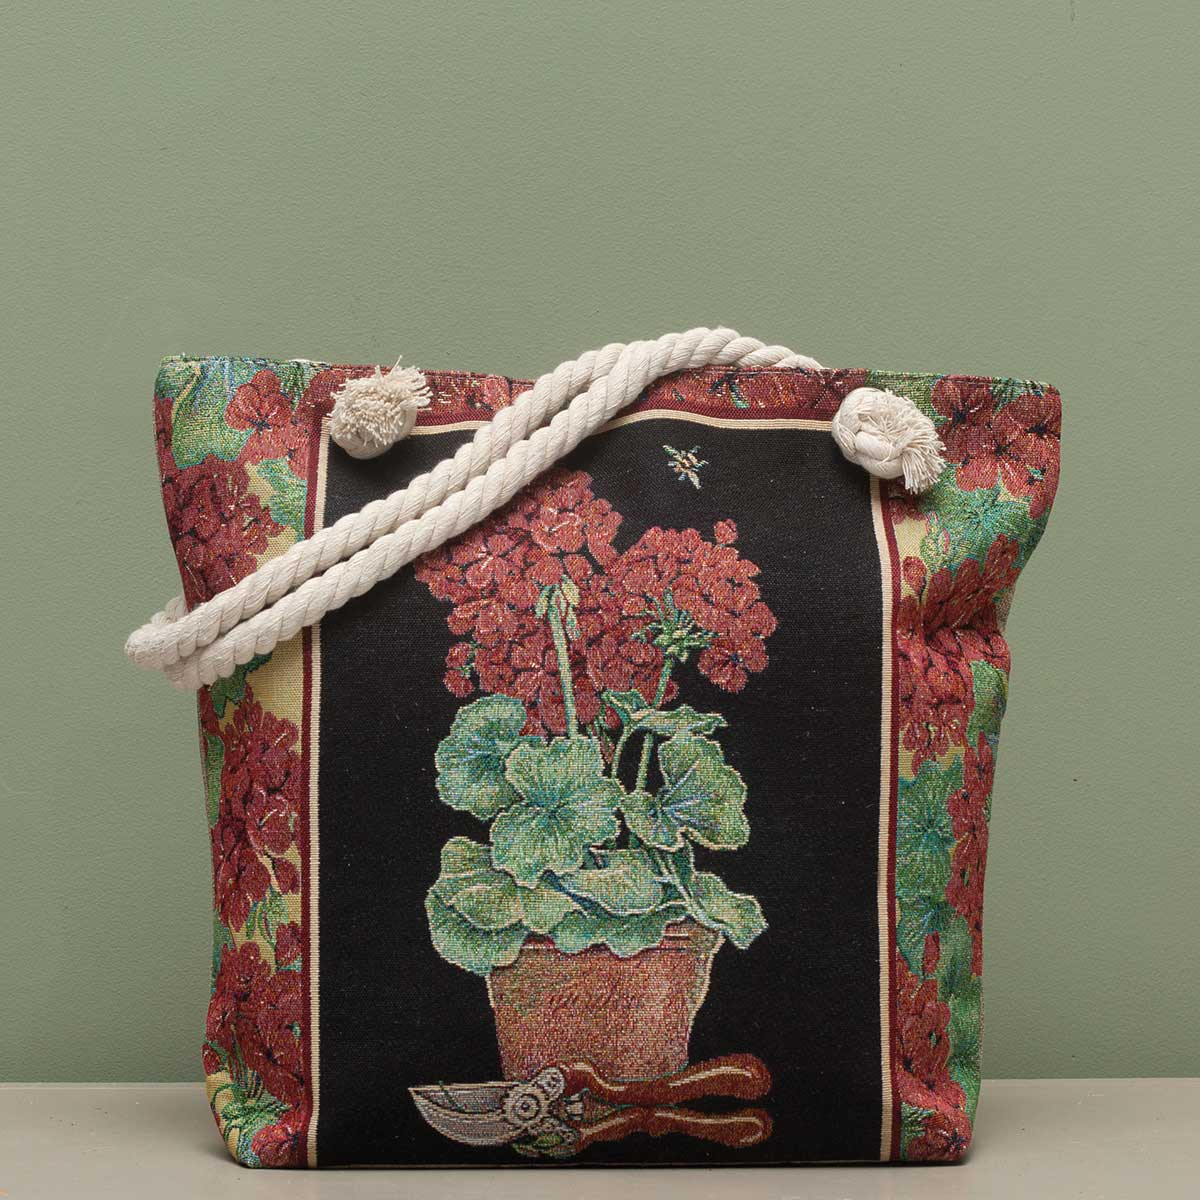 "Geranium Tapestry Bag 17.5""x5""x14"" with 10"" Shoulder Strap, Lini"